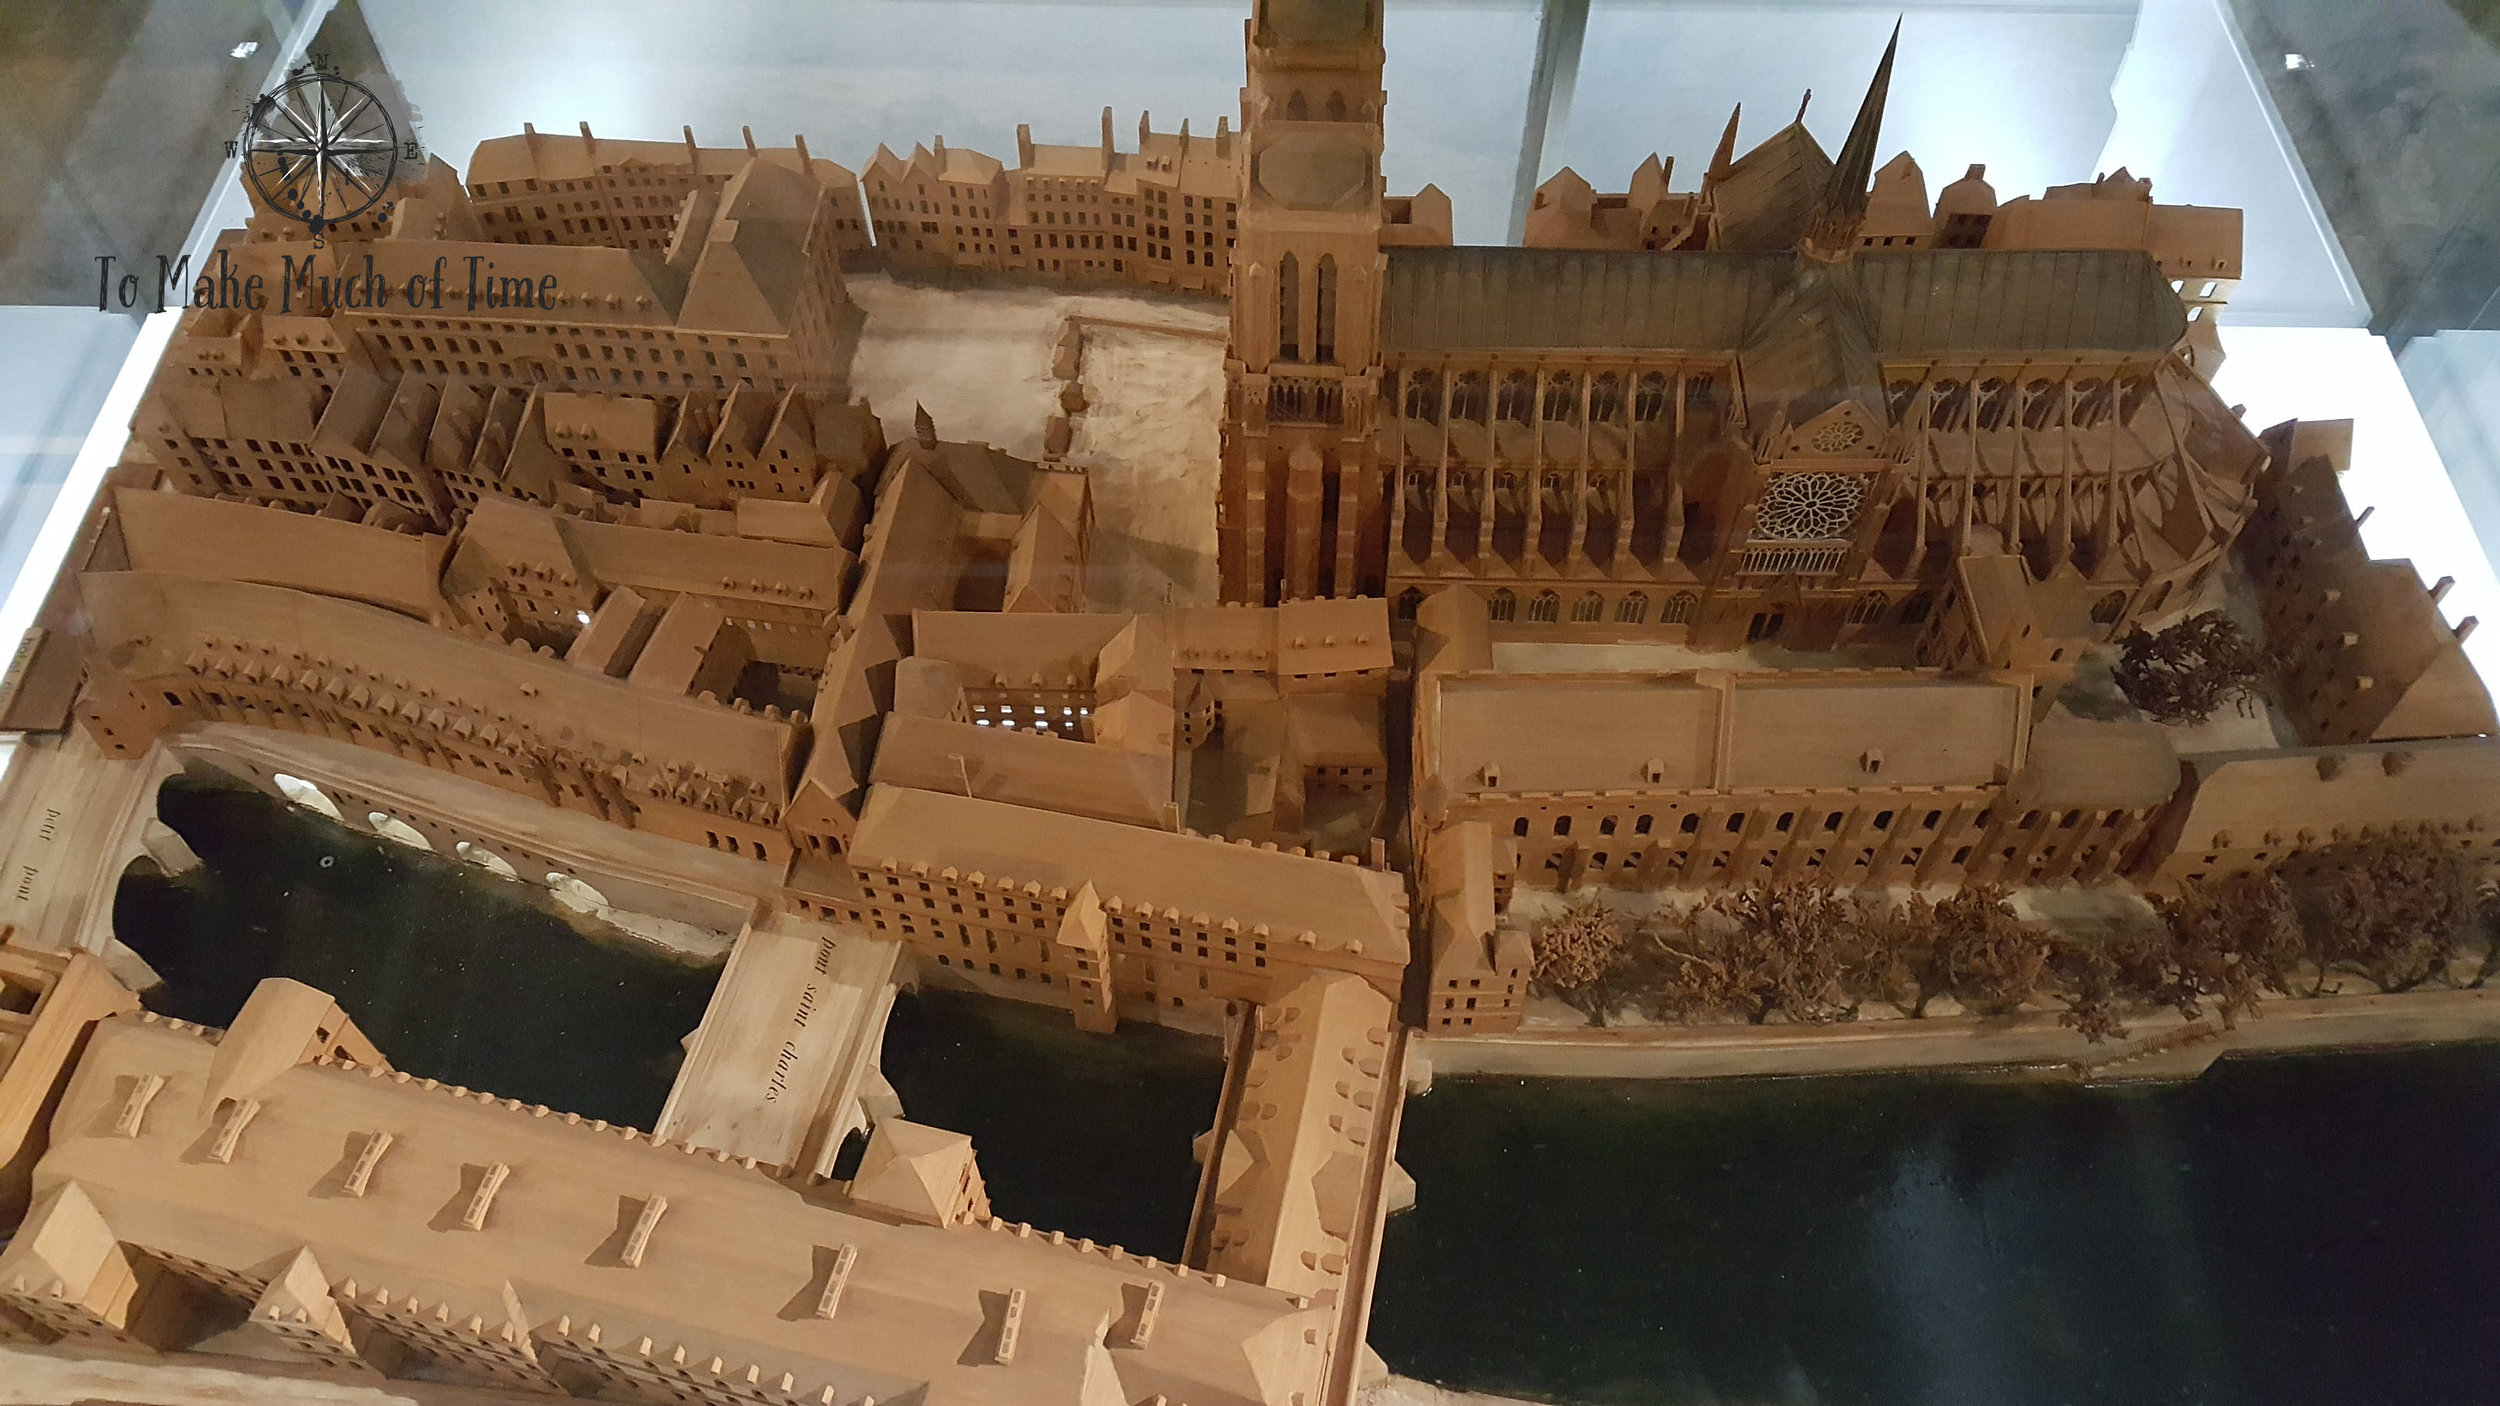 This model in the Crypt showed the island at one point in history - you can see Notre Dame on the right.